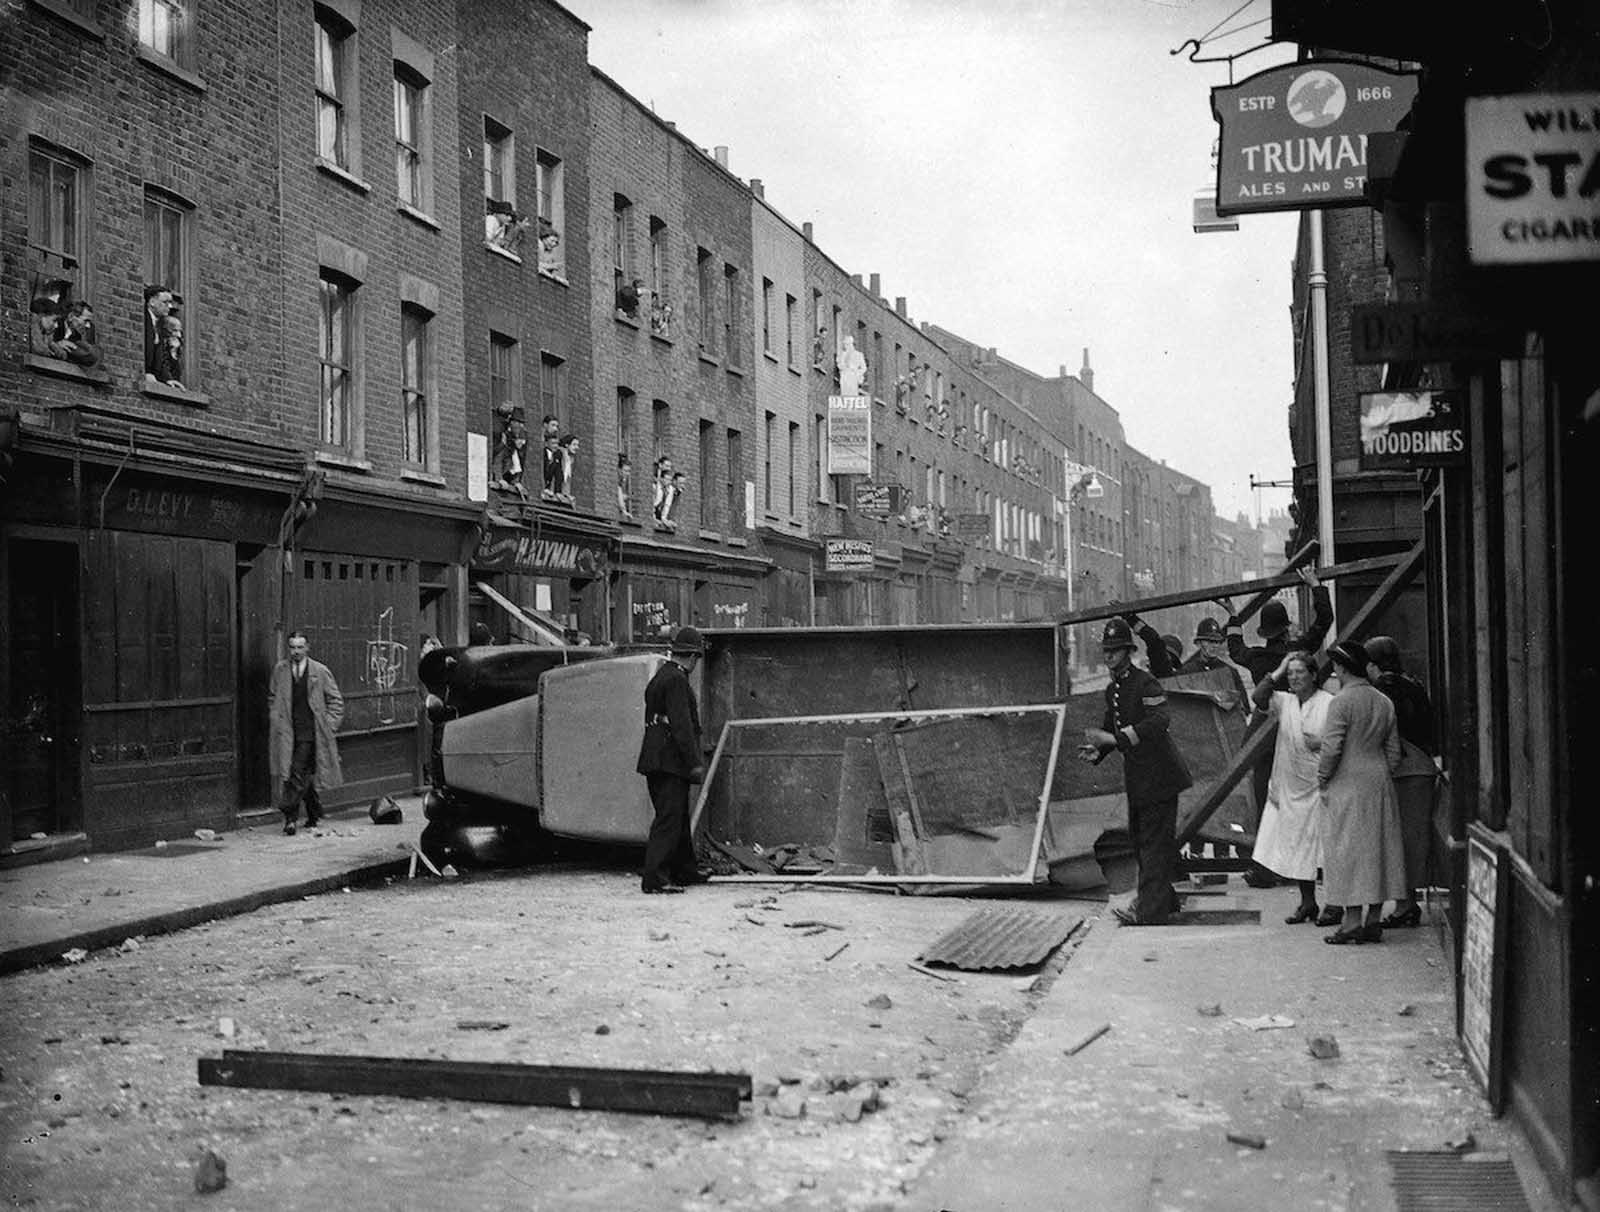 East London - Police remove an overturned lorry used as a barricade during the Communist-Fascist riots in Cable Street. 1936.